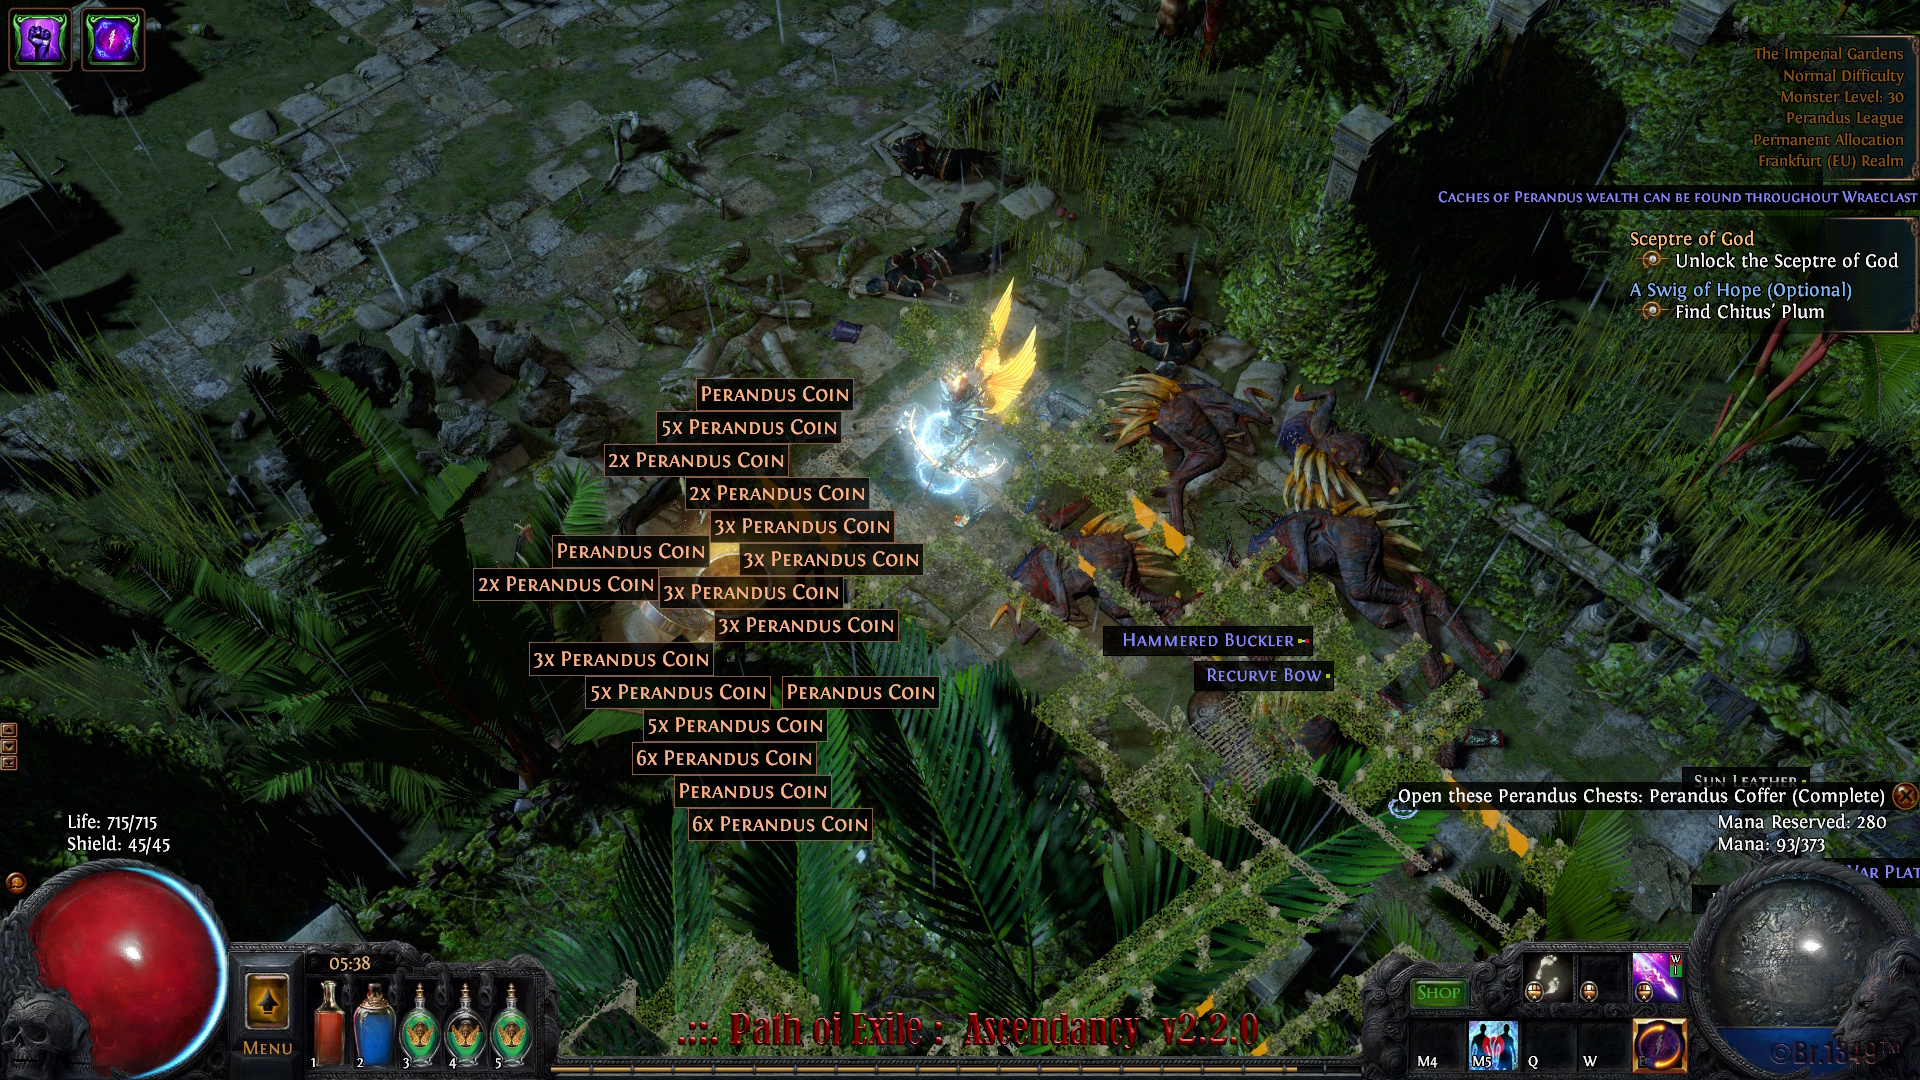 Screenshots by ©Br.1349™ - Path of Exile Online RPG, PoE